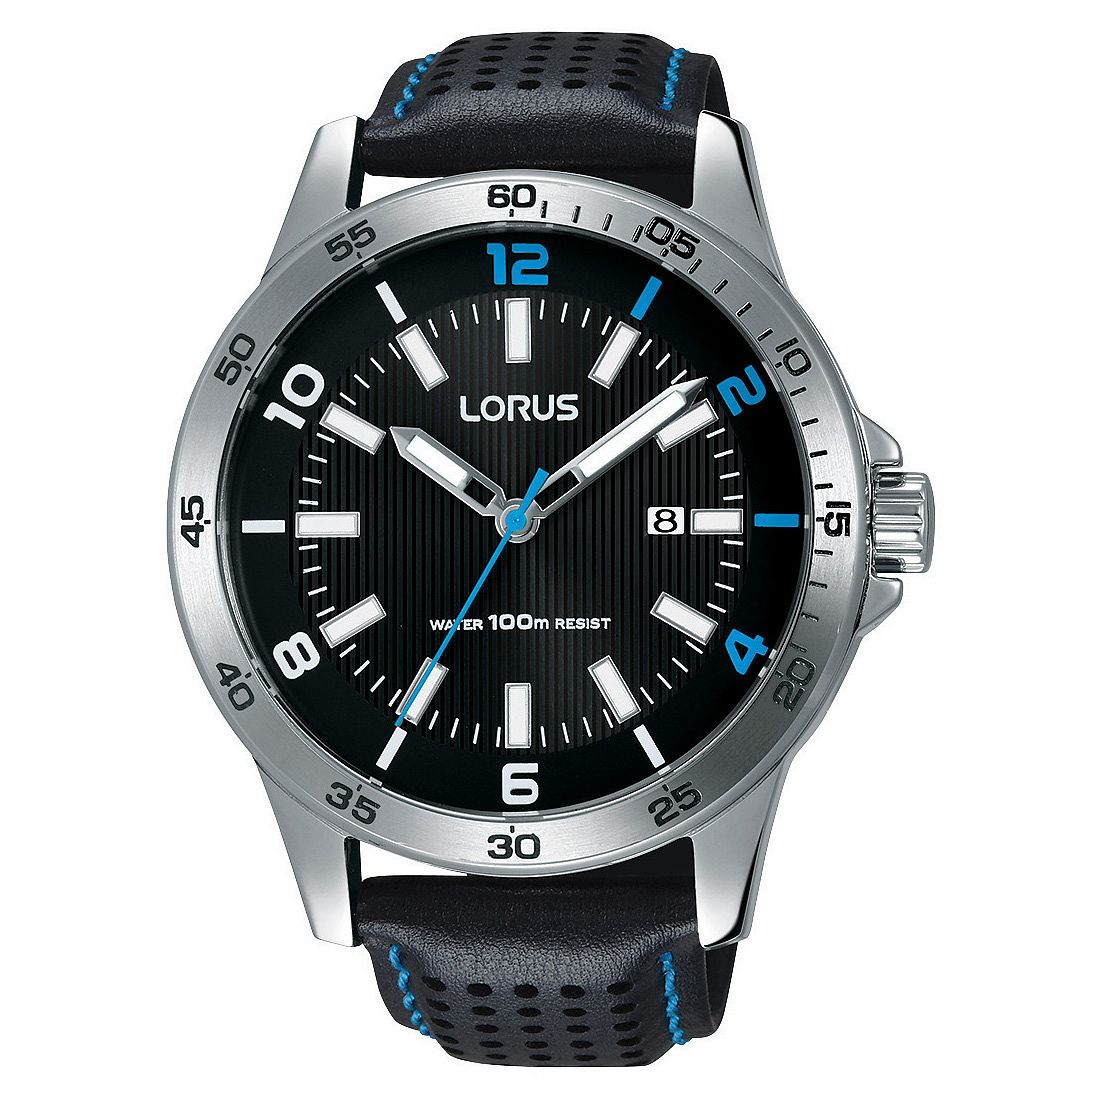 Lorus Men's Black Leather Strap Watch - Product number 3432467